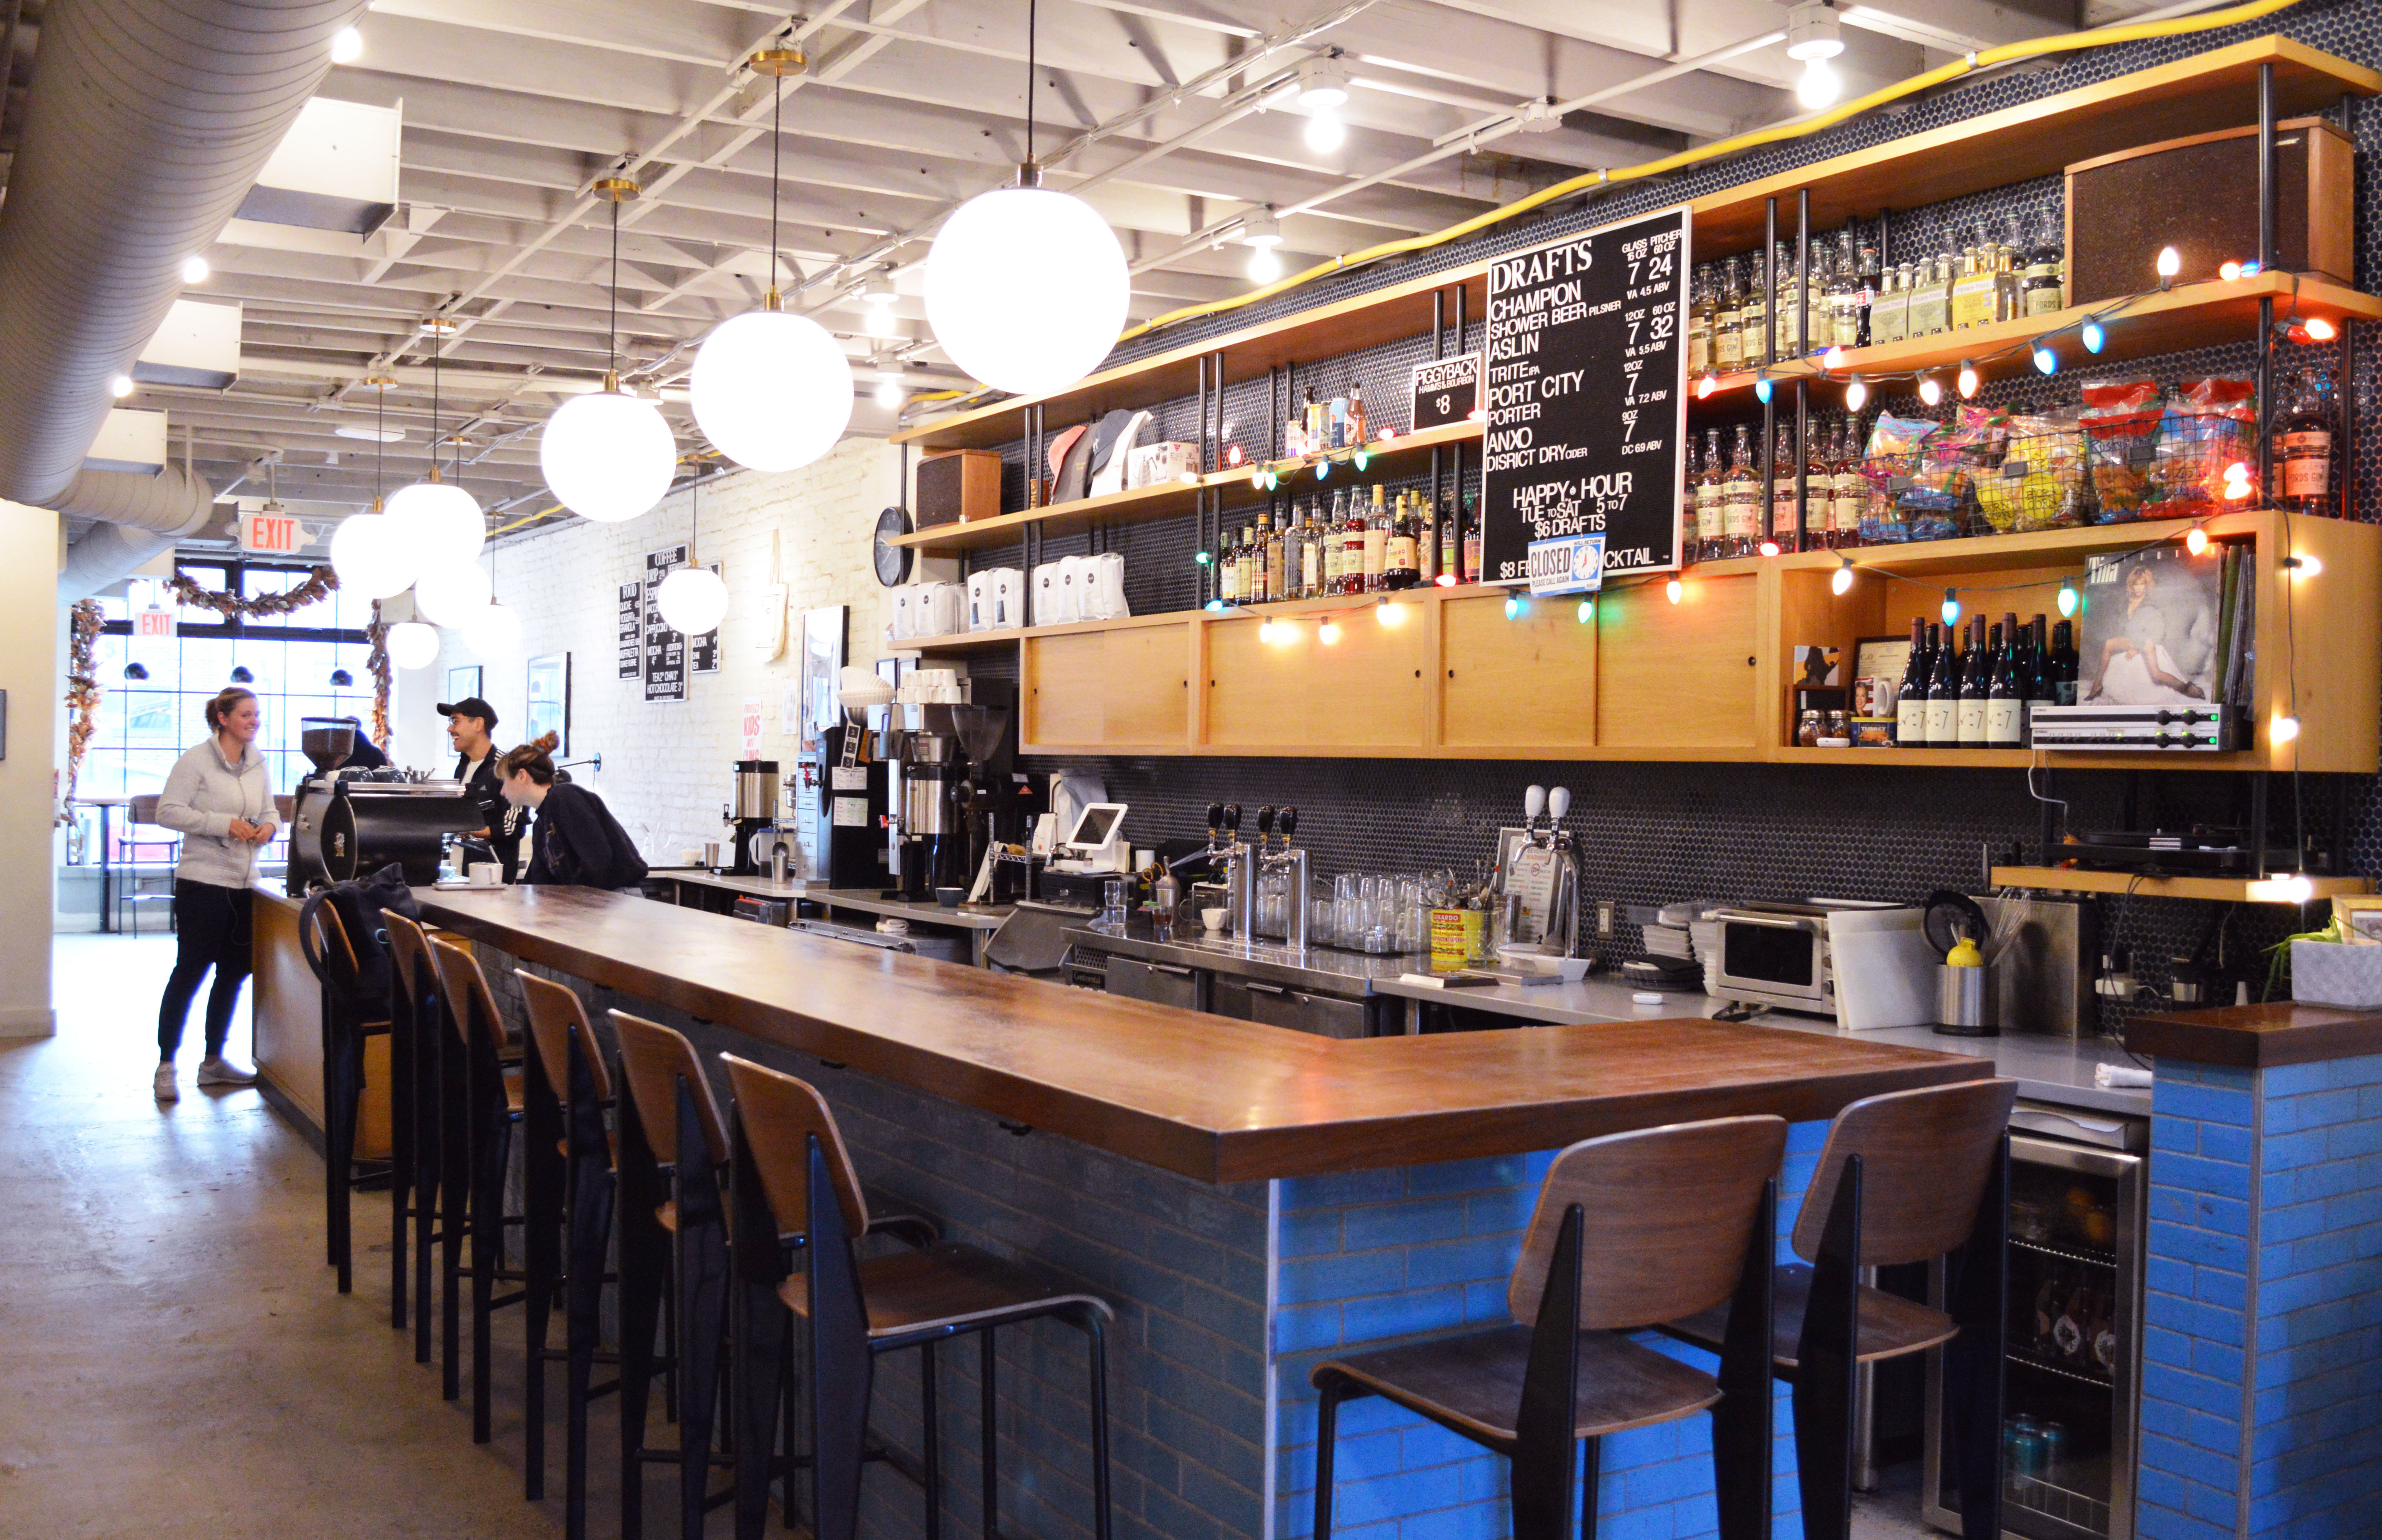 The owners of the all-day cafe that used to be called Colony Club plan to implement some design changes to reflect its new name, Doubles.